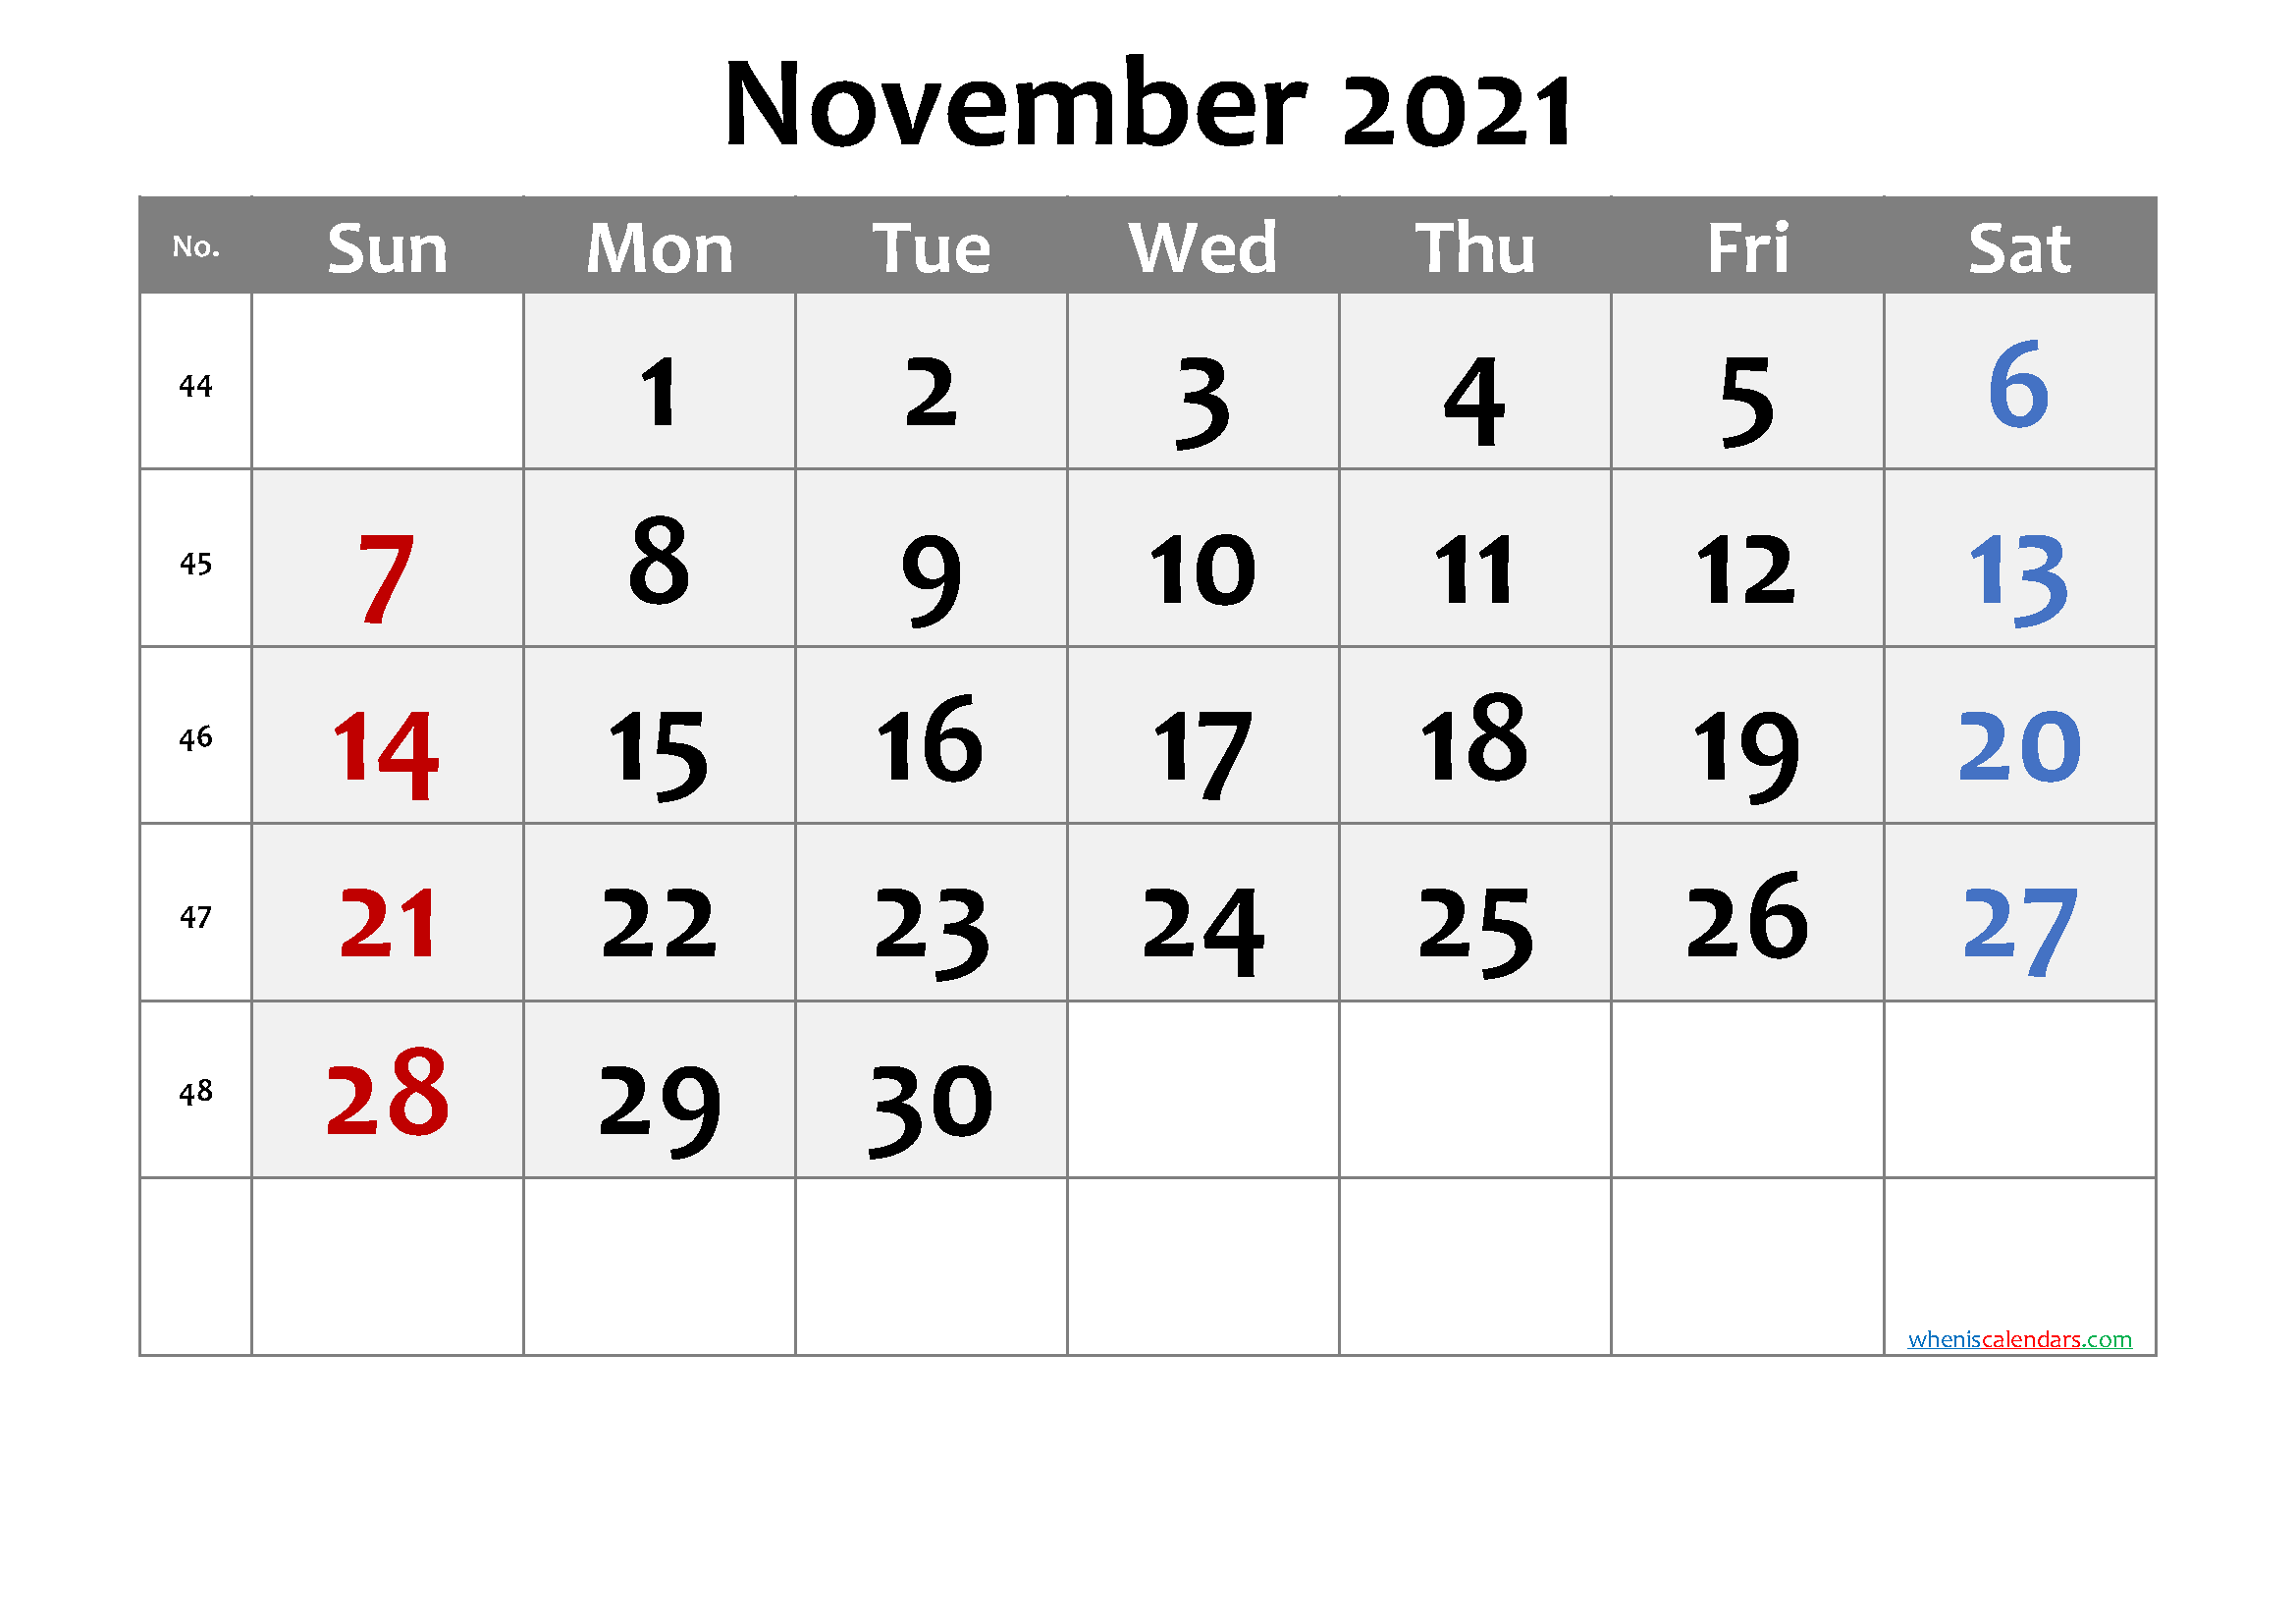 November 2021 Printable Calendar with Week Numbers